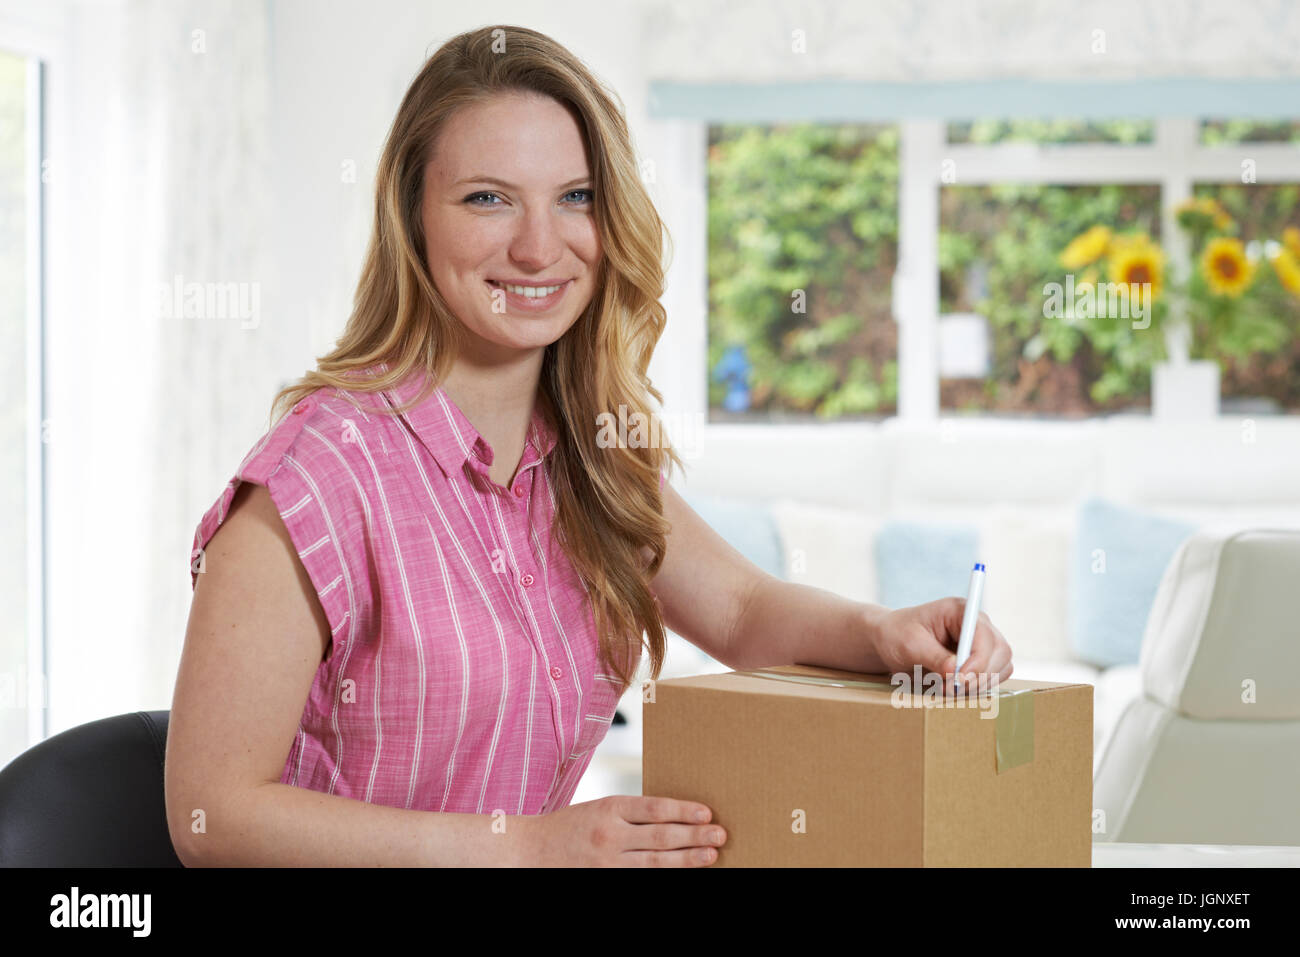 Portrait Of Woman At Home Writing Address On Package - Stock Image